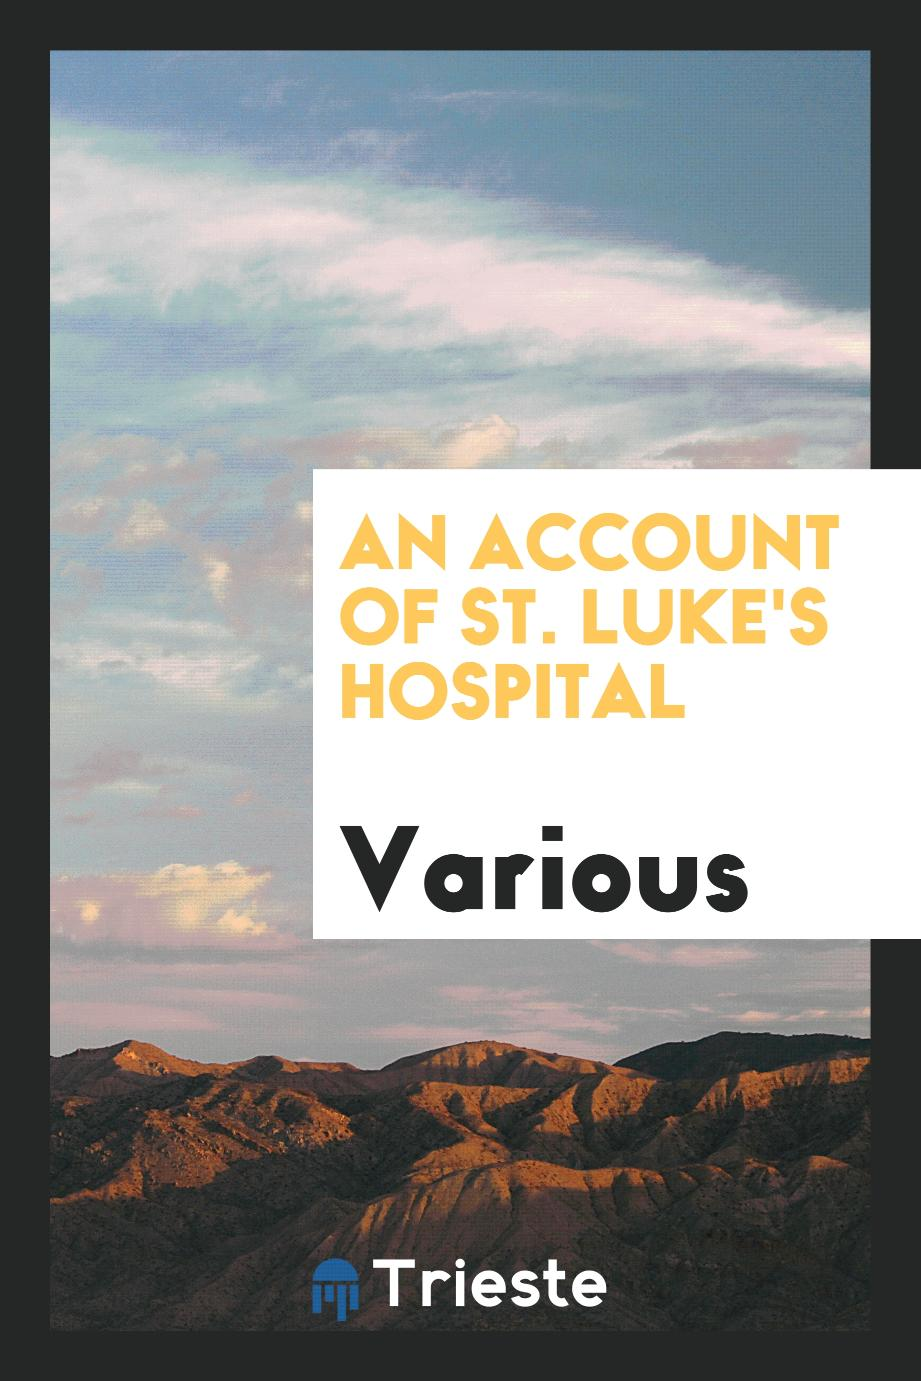 An Account of St. Luke's Hospital